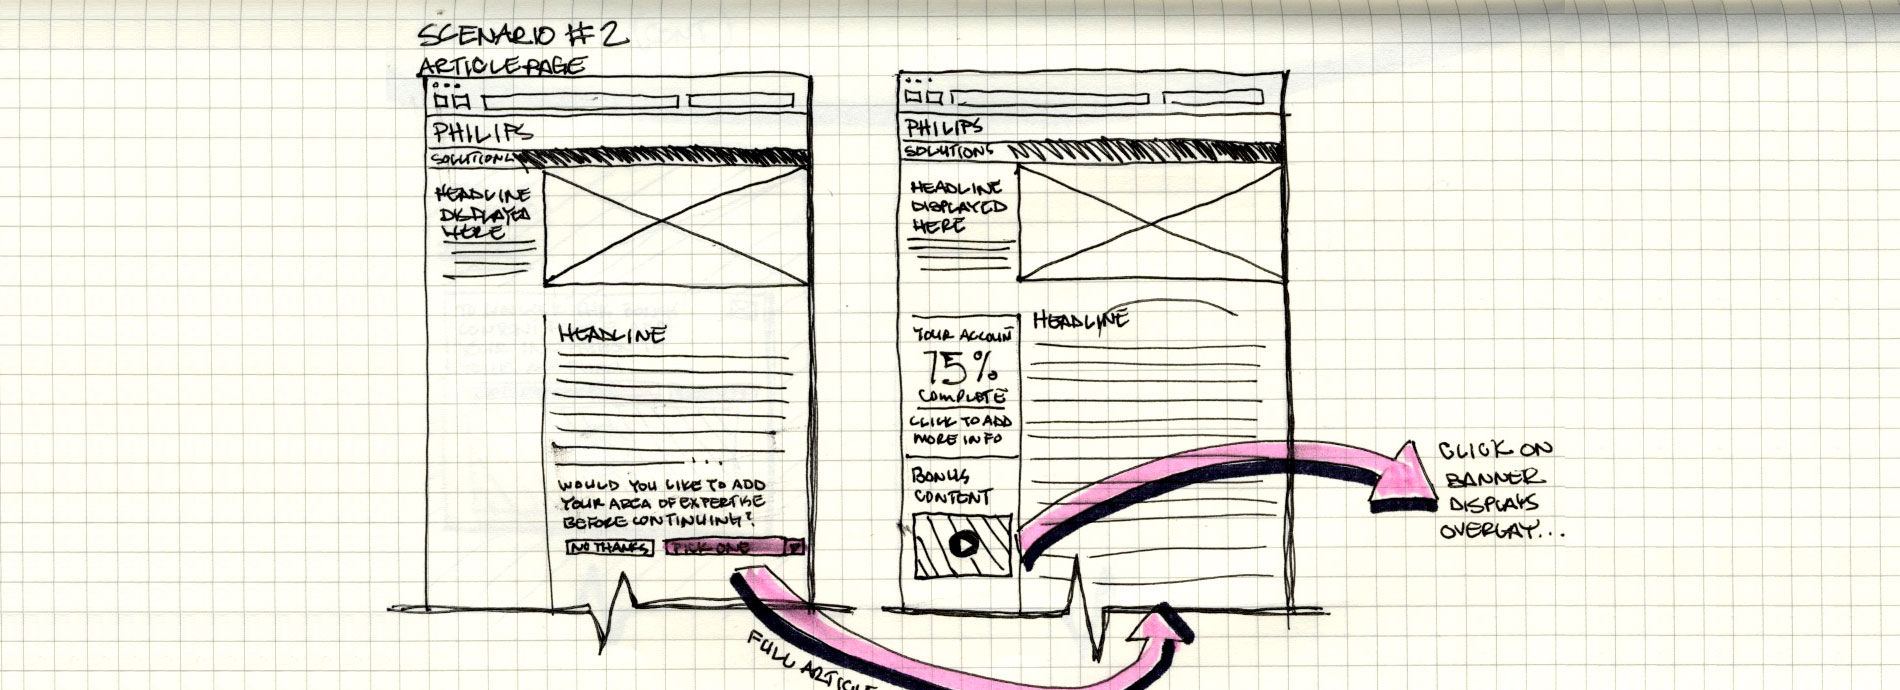 Scan of UX paper sketches